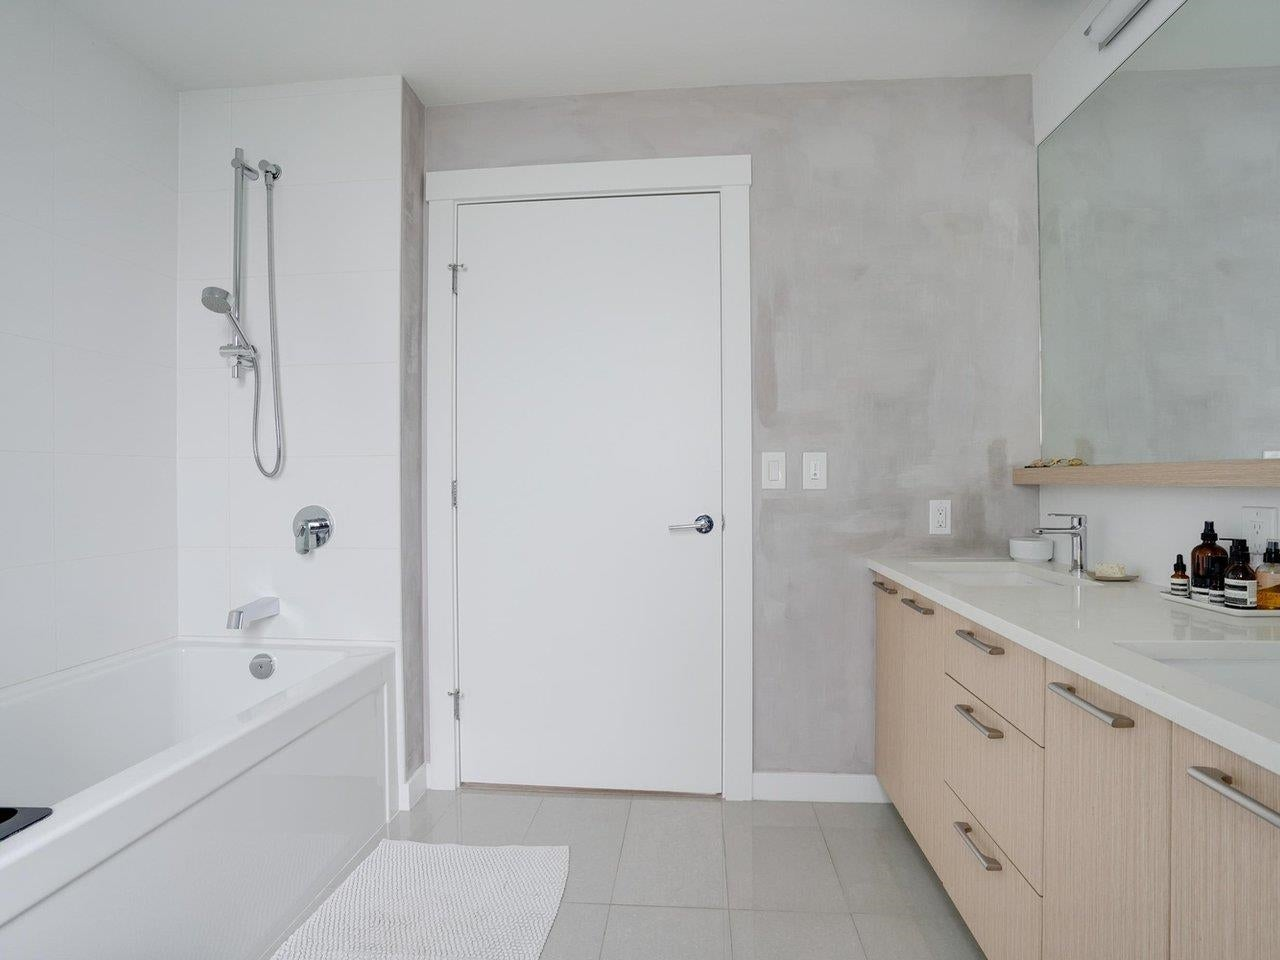 409 615 E 3RD STREET - Lower Lonsdale Apartment/Condo for sale, 2 Bedrooms (R2621616) - #16